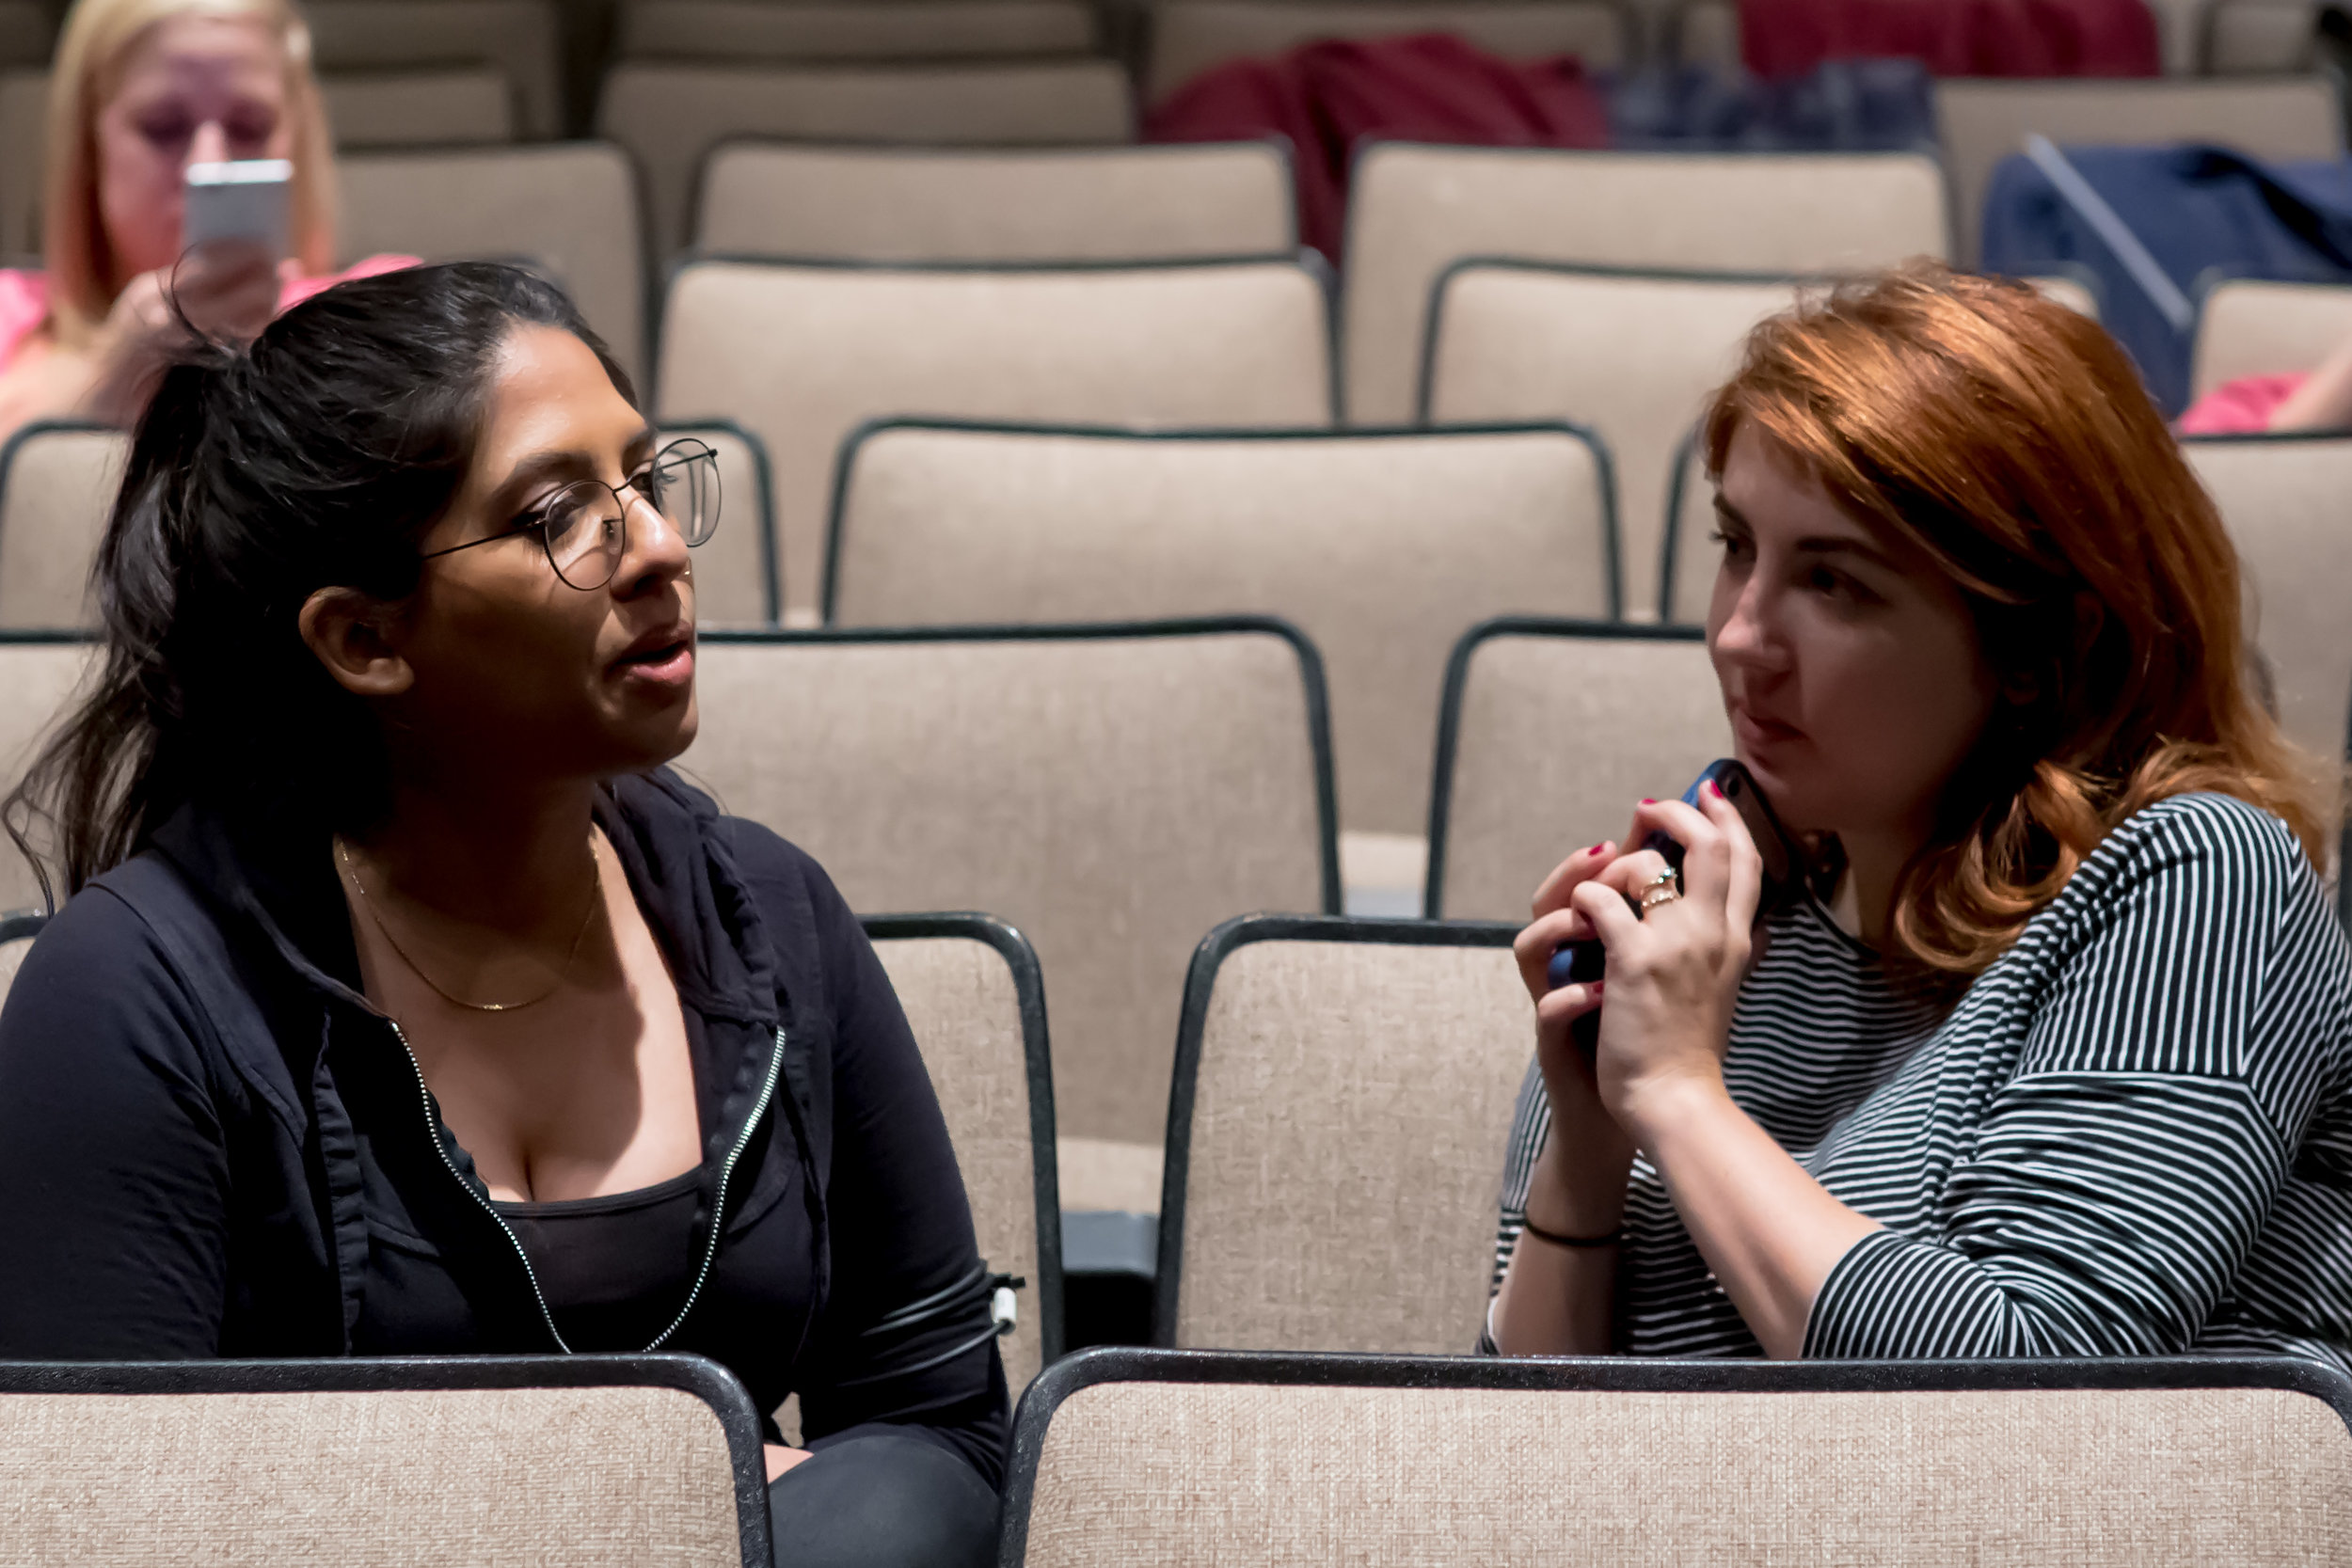 Teodora Totoiu (right) in conference with camera operator Samia Zaidi on the day of the filming.